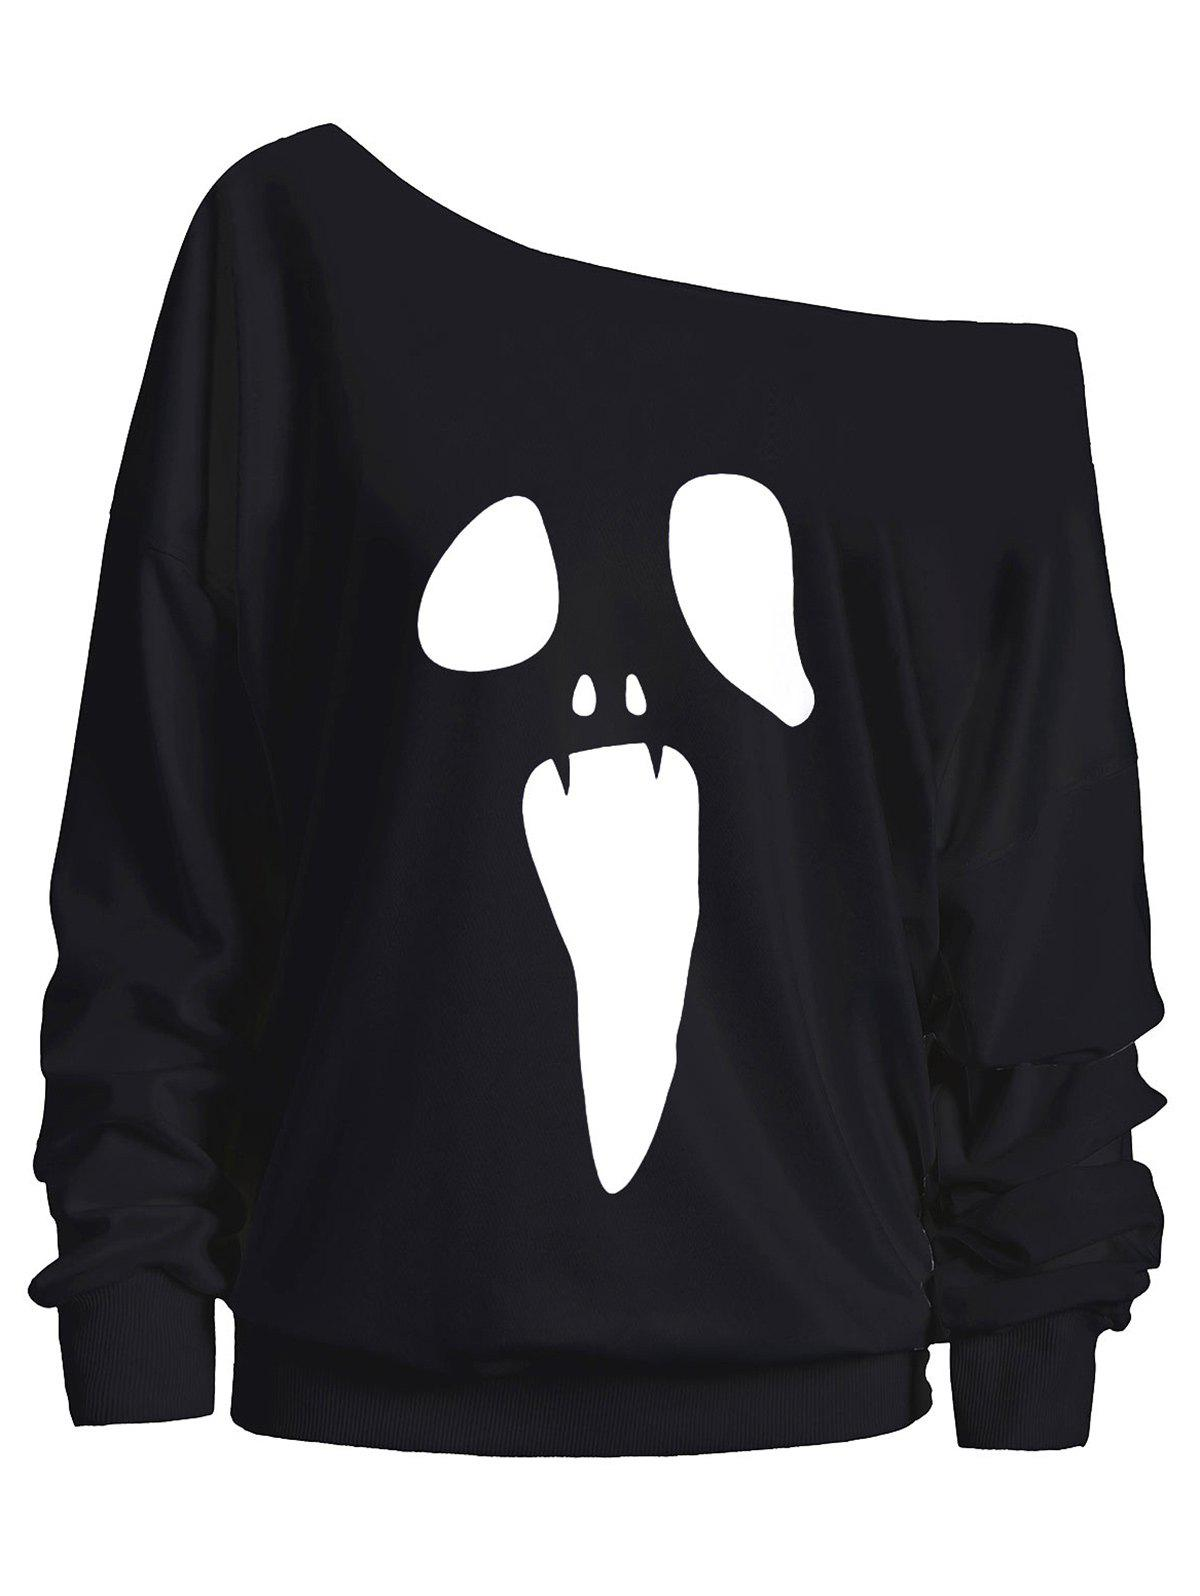 Skew Neck Halloween Ghost SweatshirtWOMEN<br><br>Size: M; Color: BLACK; Material: Cotton,Polyester; Shirt Length: Regular; Sleeve Length: Full; Style: Casual; Pattern Style: Print; Season: Fall; Weight: 0.3500kg; Package Contents: 1 x Sweatshirt;